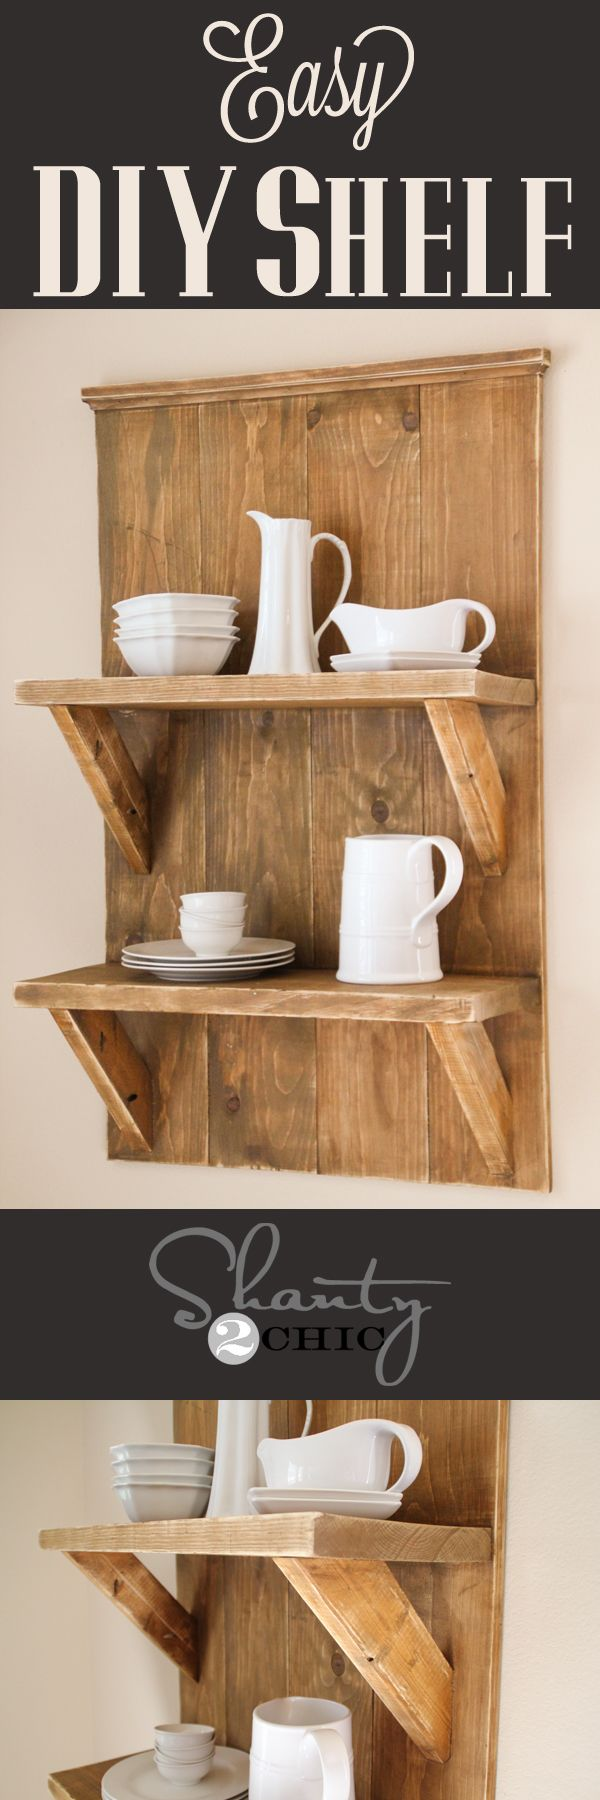 Easy DIY Shelf made with reclaimed lumber! Looks so easy!!